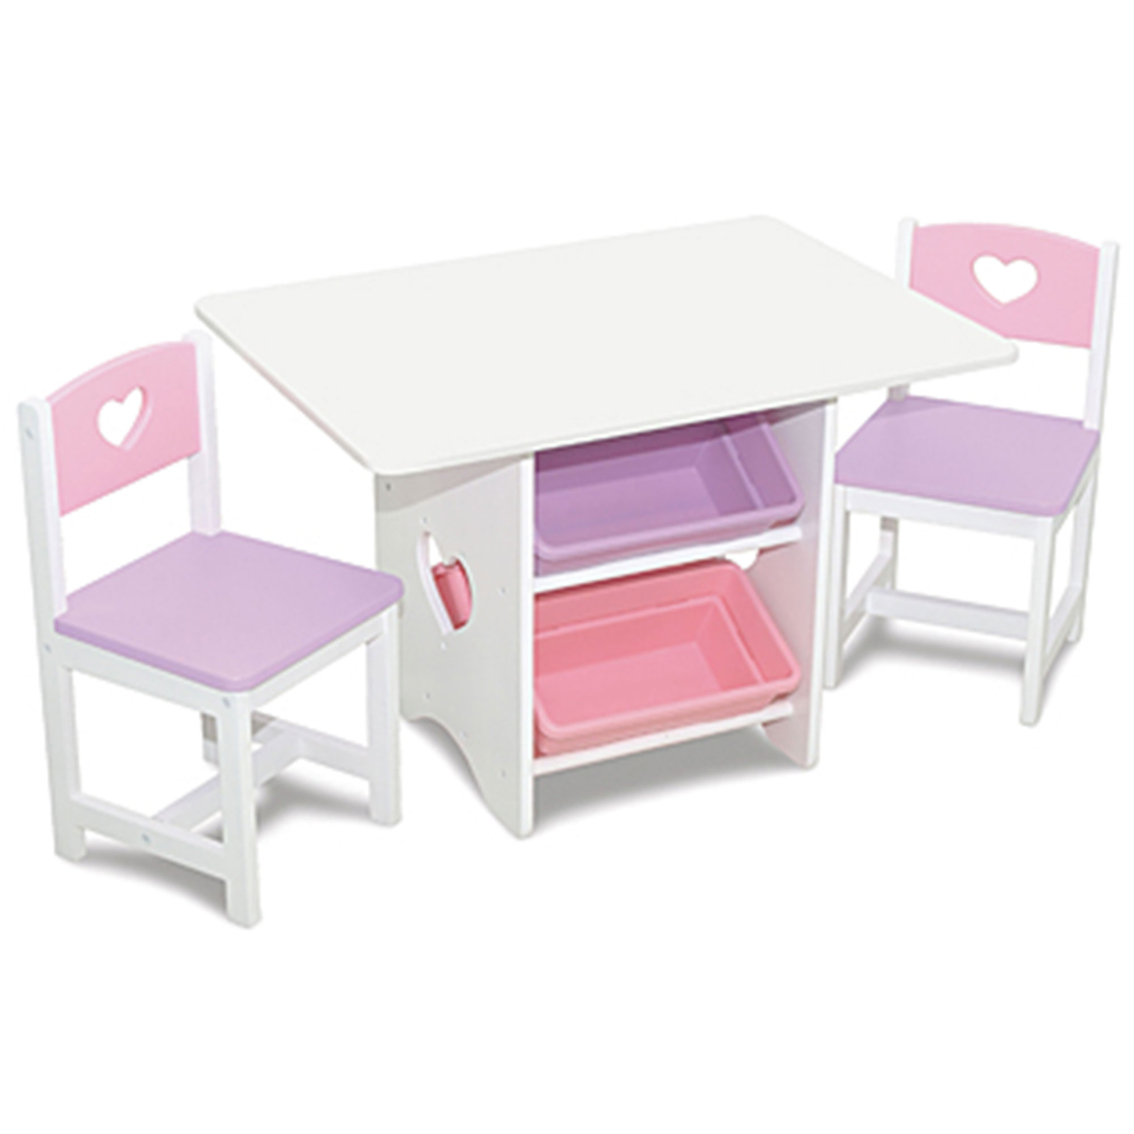 Kidkraft Heart Table And Chair Set Kidkraft Heart Table Set With Pastel Bins Easels